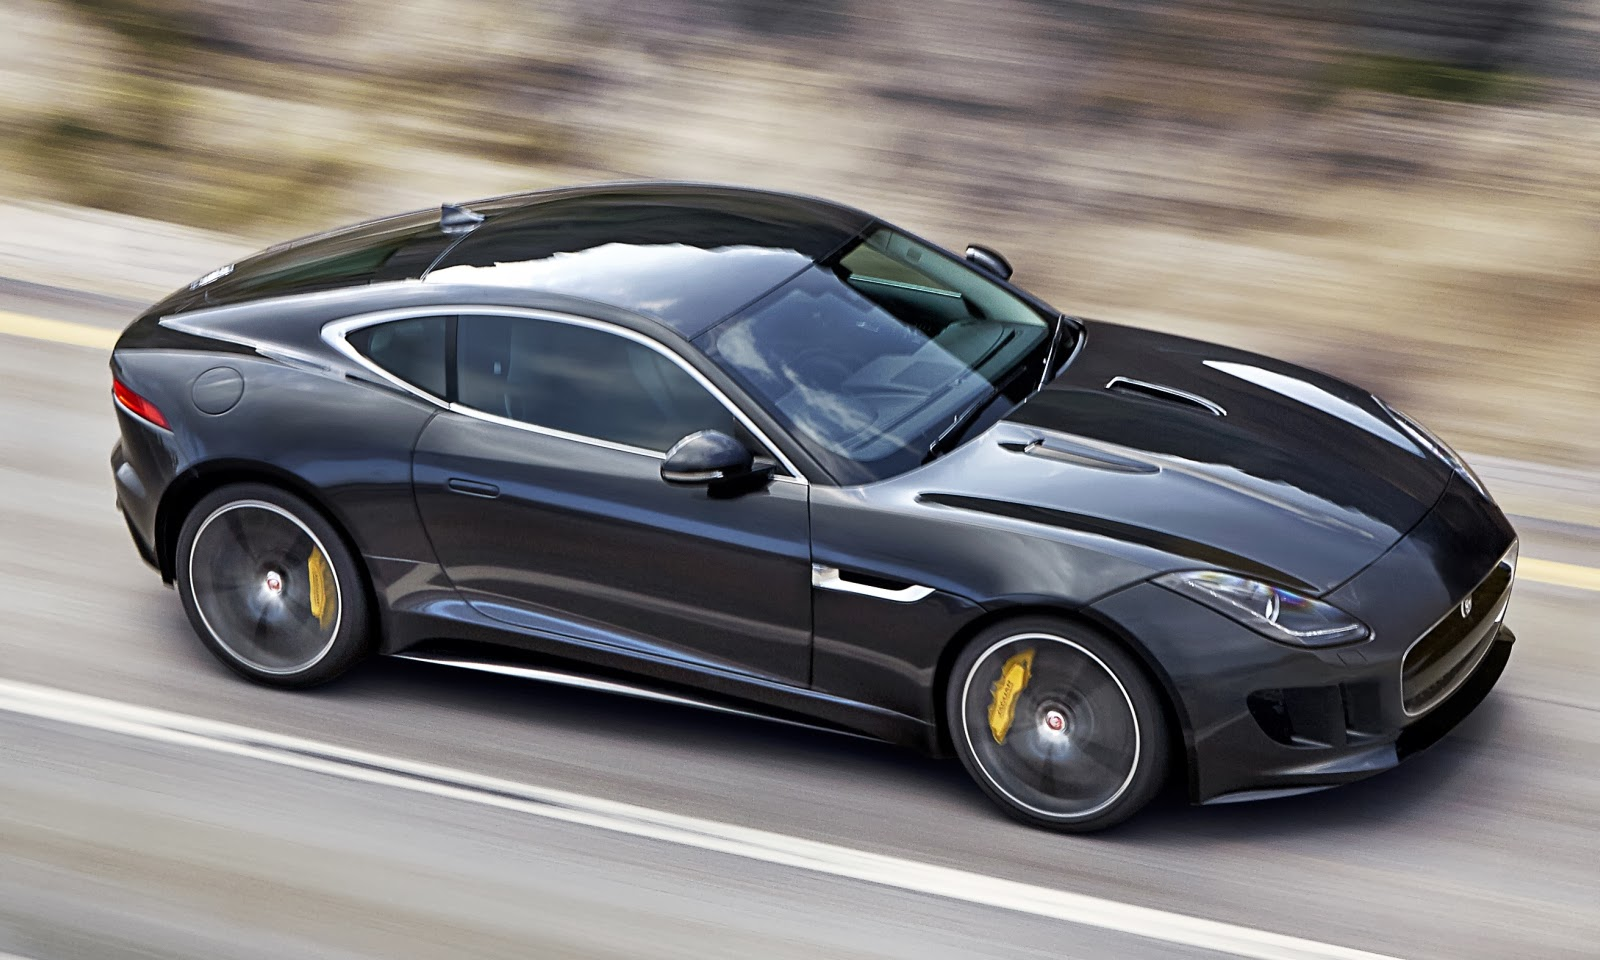 2016 jaguar f type project wallpapers - 2016 Jaguar F-Type Project 7 Images Pictures and Videos